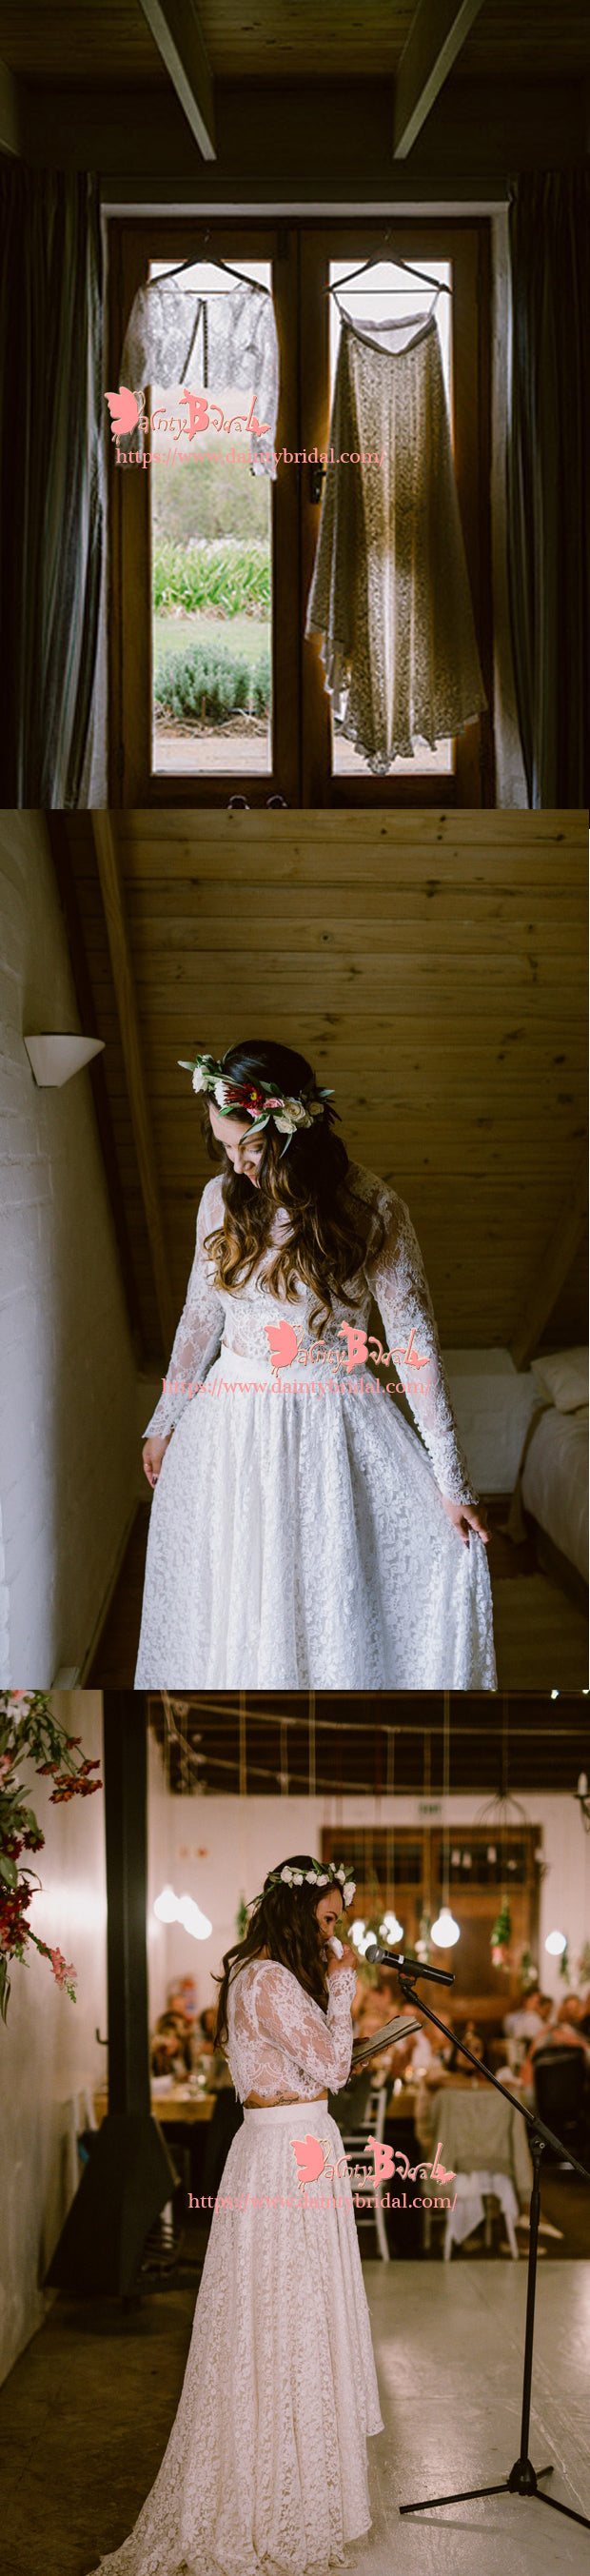 2018 Fashion Country Two Pieces Long Sleeve A-line See-through White  Lace  Wedding Dresses,DB0109